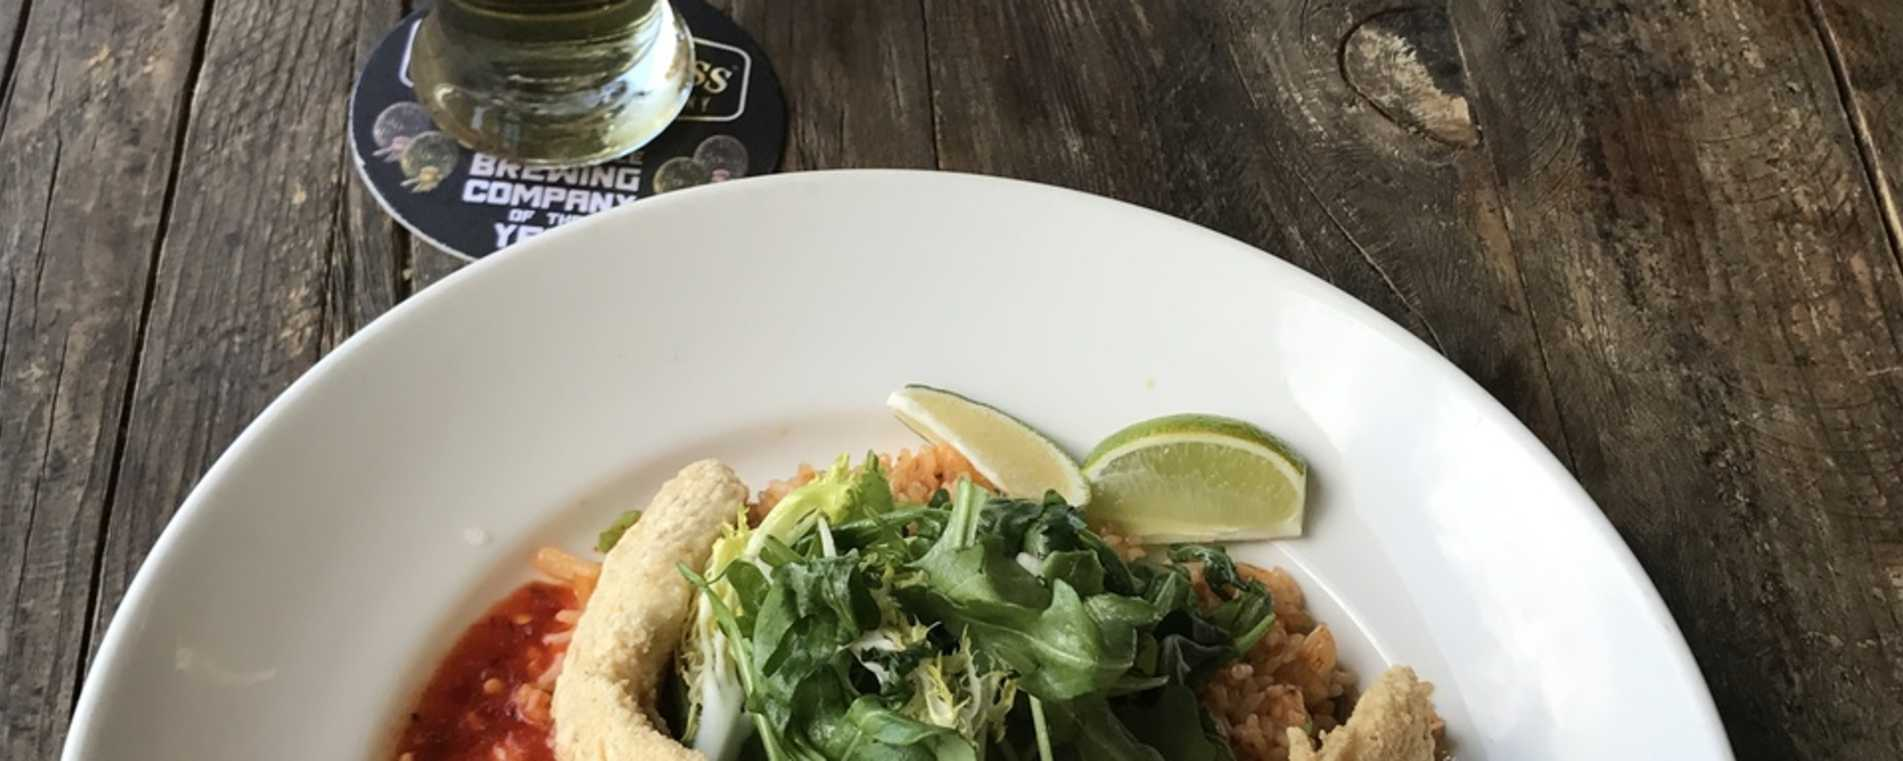 Food - Karl Strauss Brewing Company